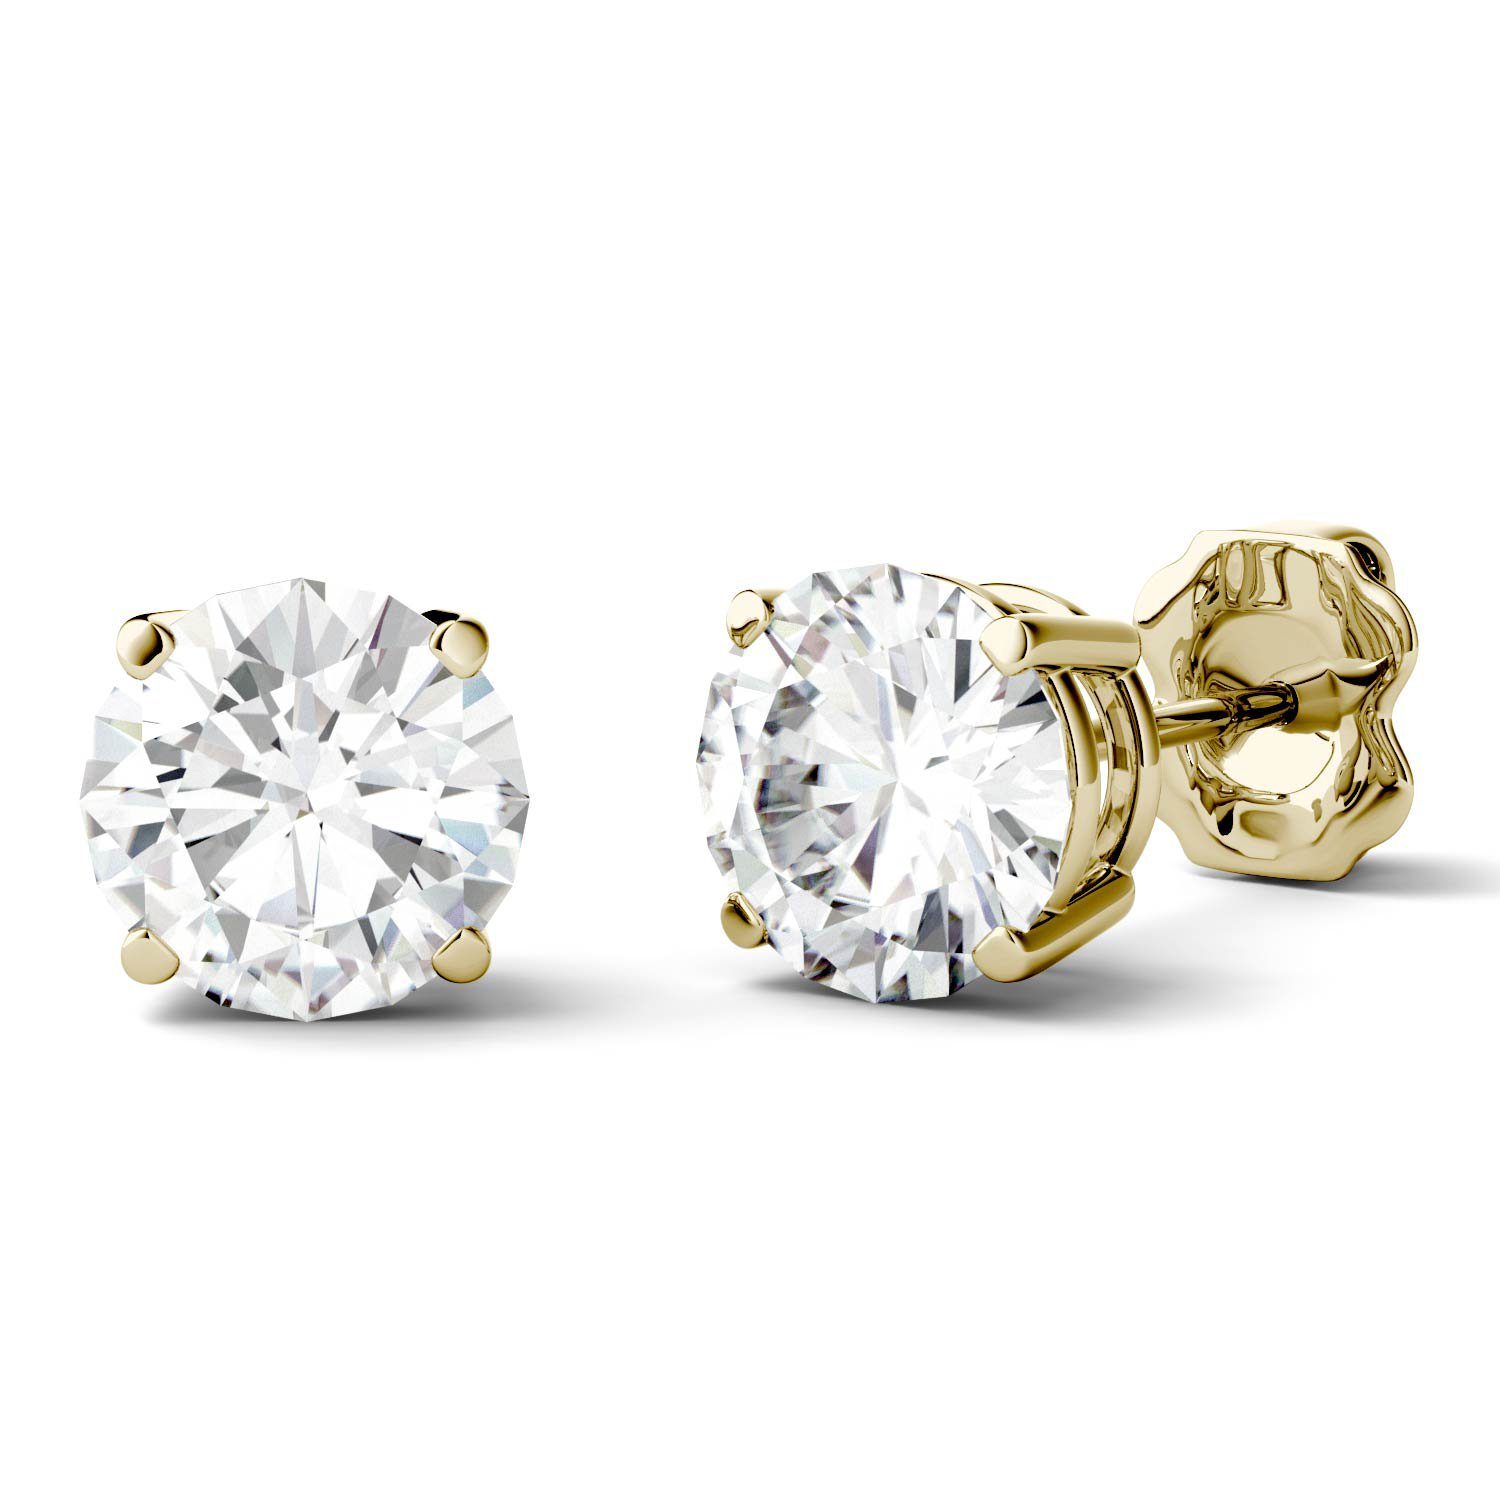 Forever One 6.5mm Round Moissanite Stud Earrings, 2.00cttw DEW (D-E-F) By Charles & Colvard